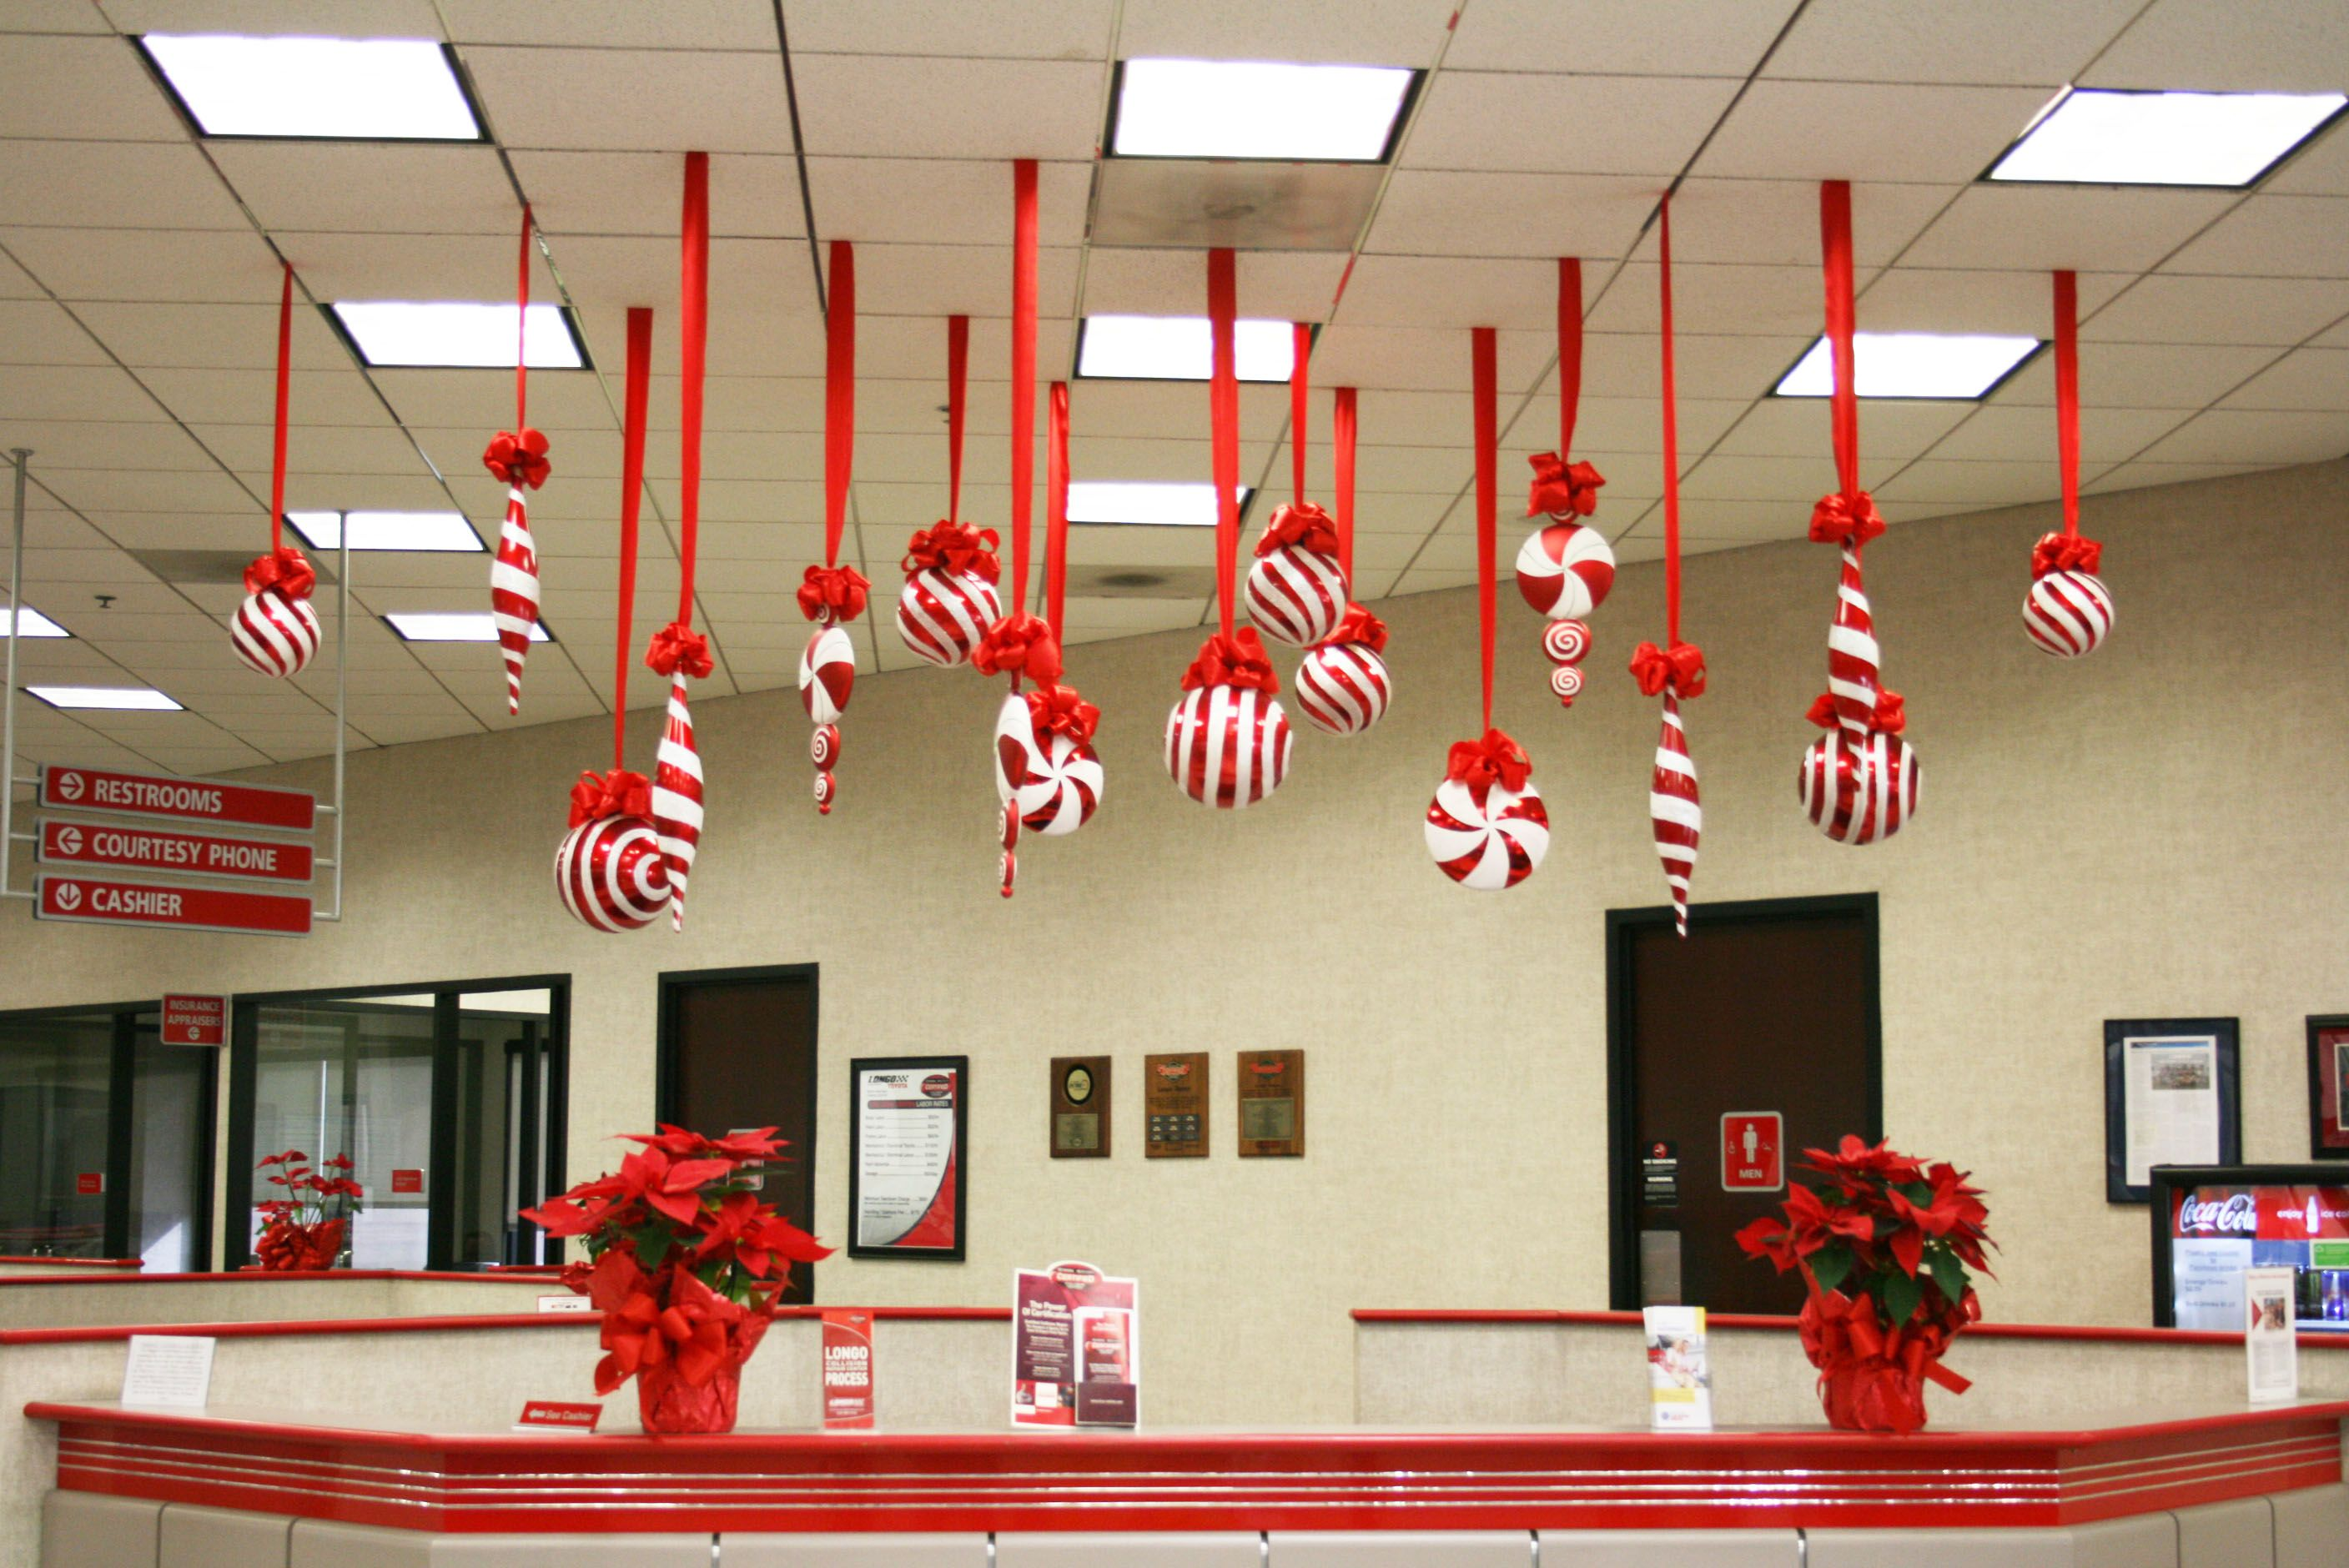 office decoration ideas op looks great for a christmas gathering entree to the supper table - Christmas Ceiling Decorations